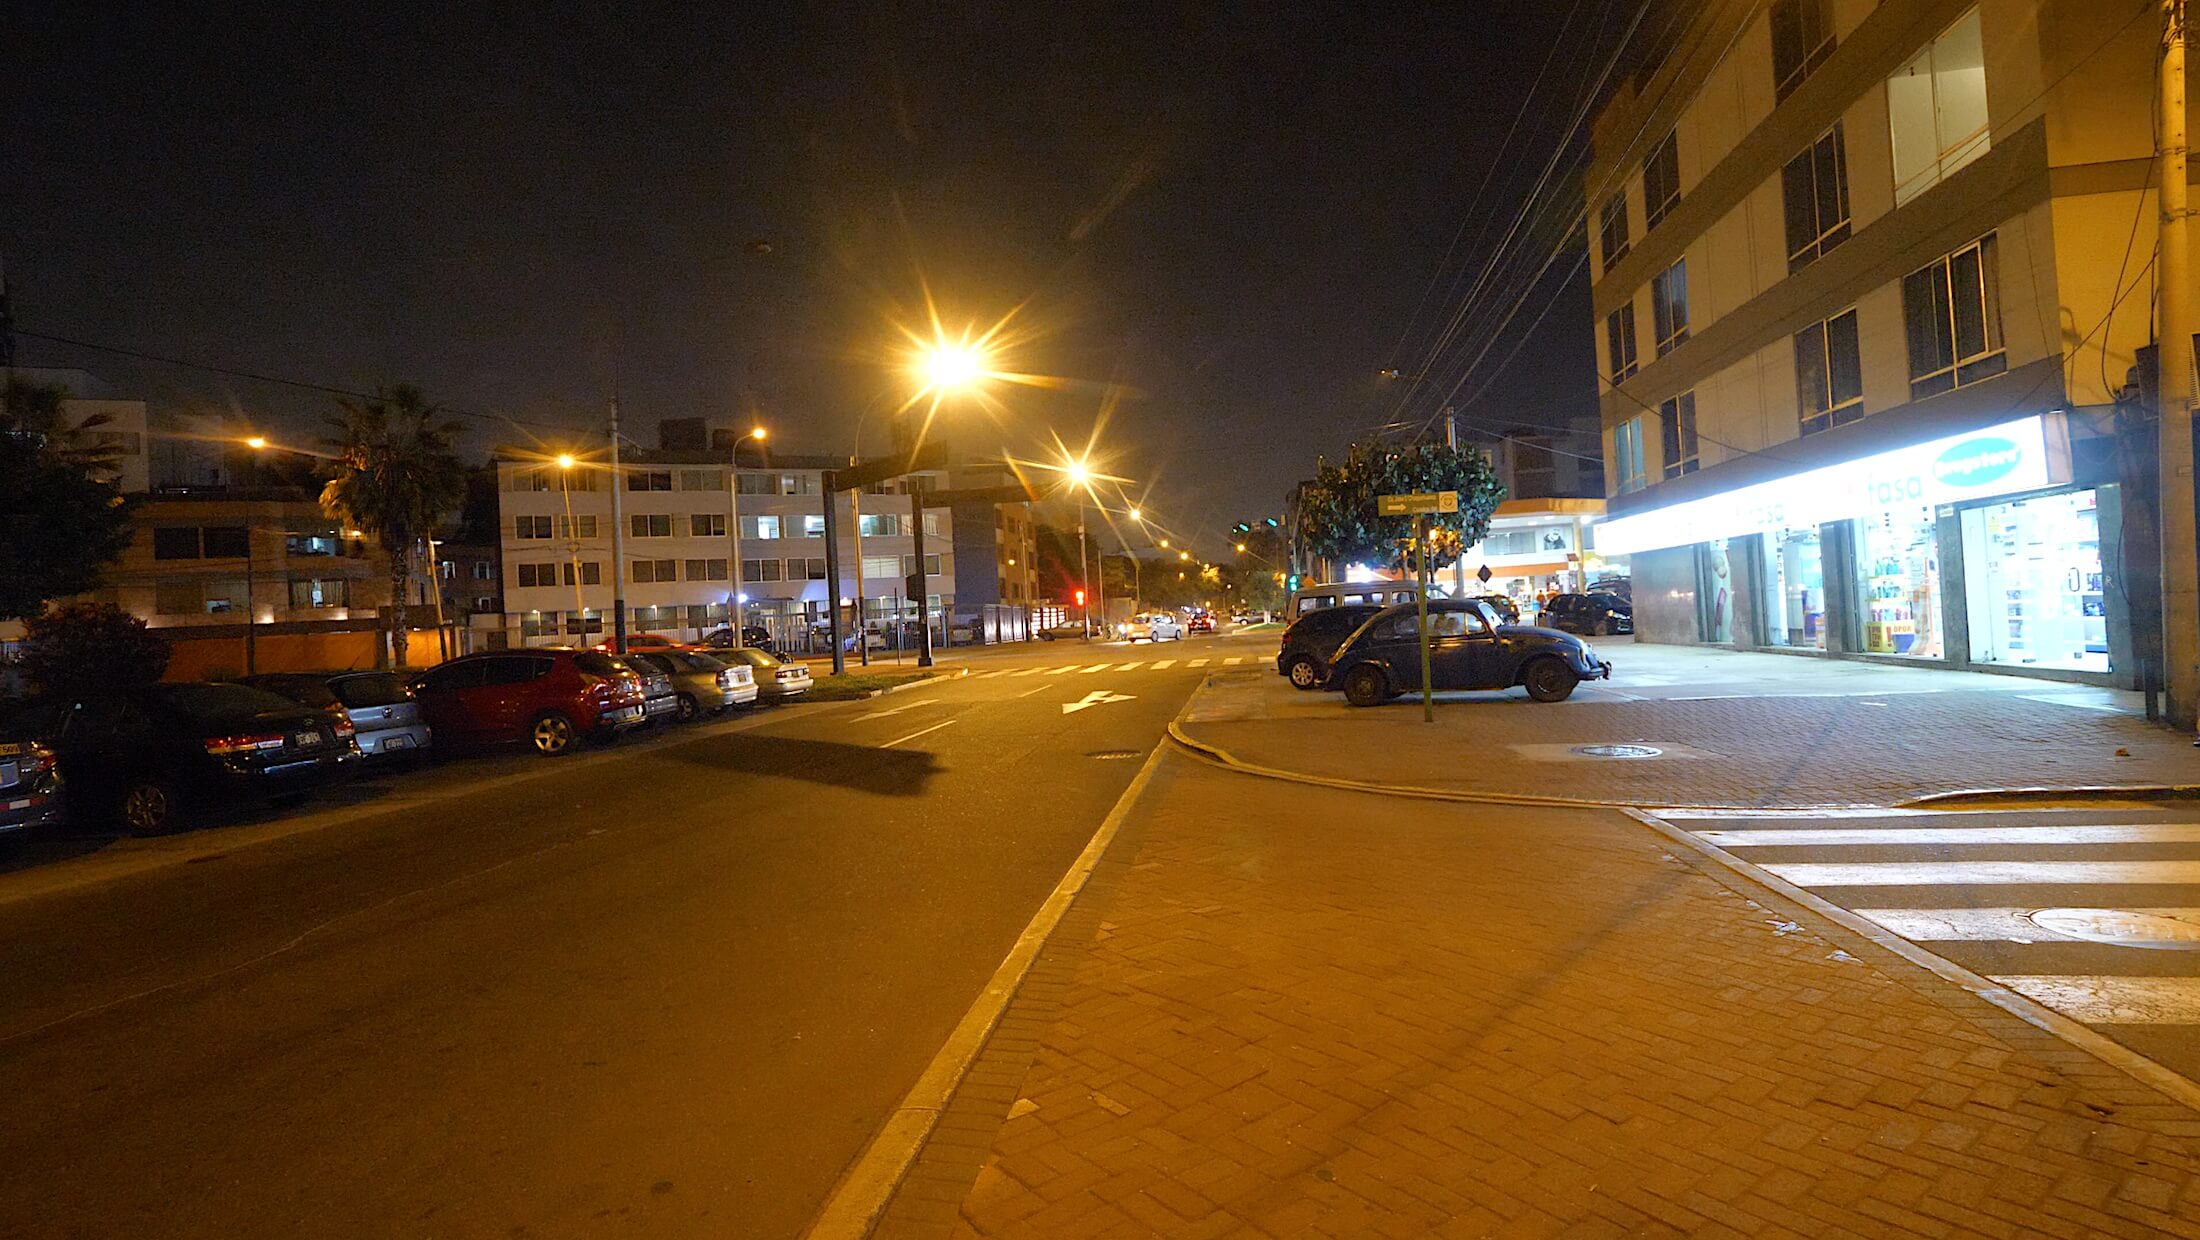 You need to remember this street corner in Miraflores, Peru